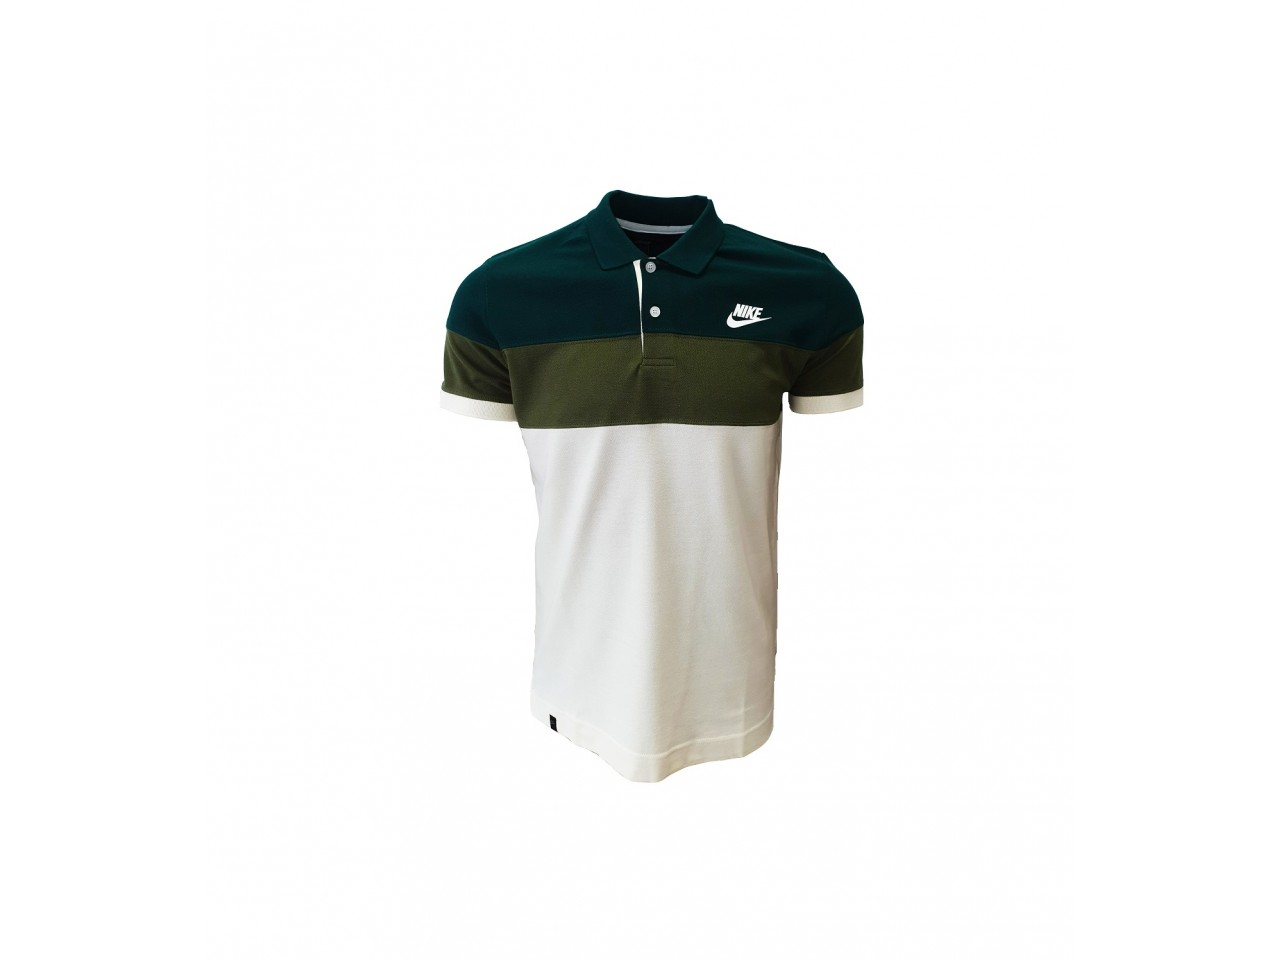 Nike Polo T-Shirt White Green